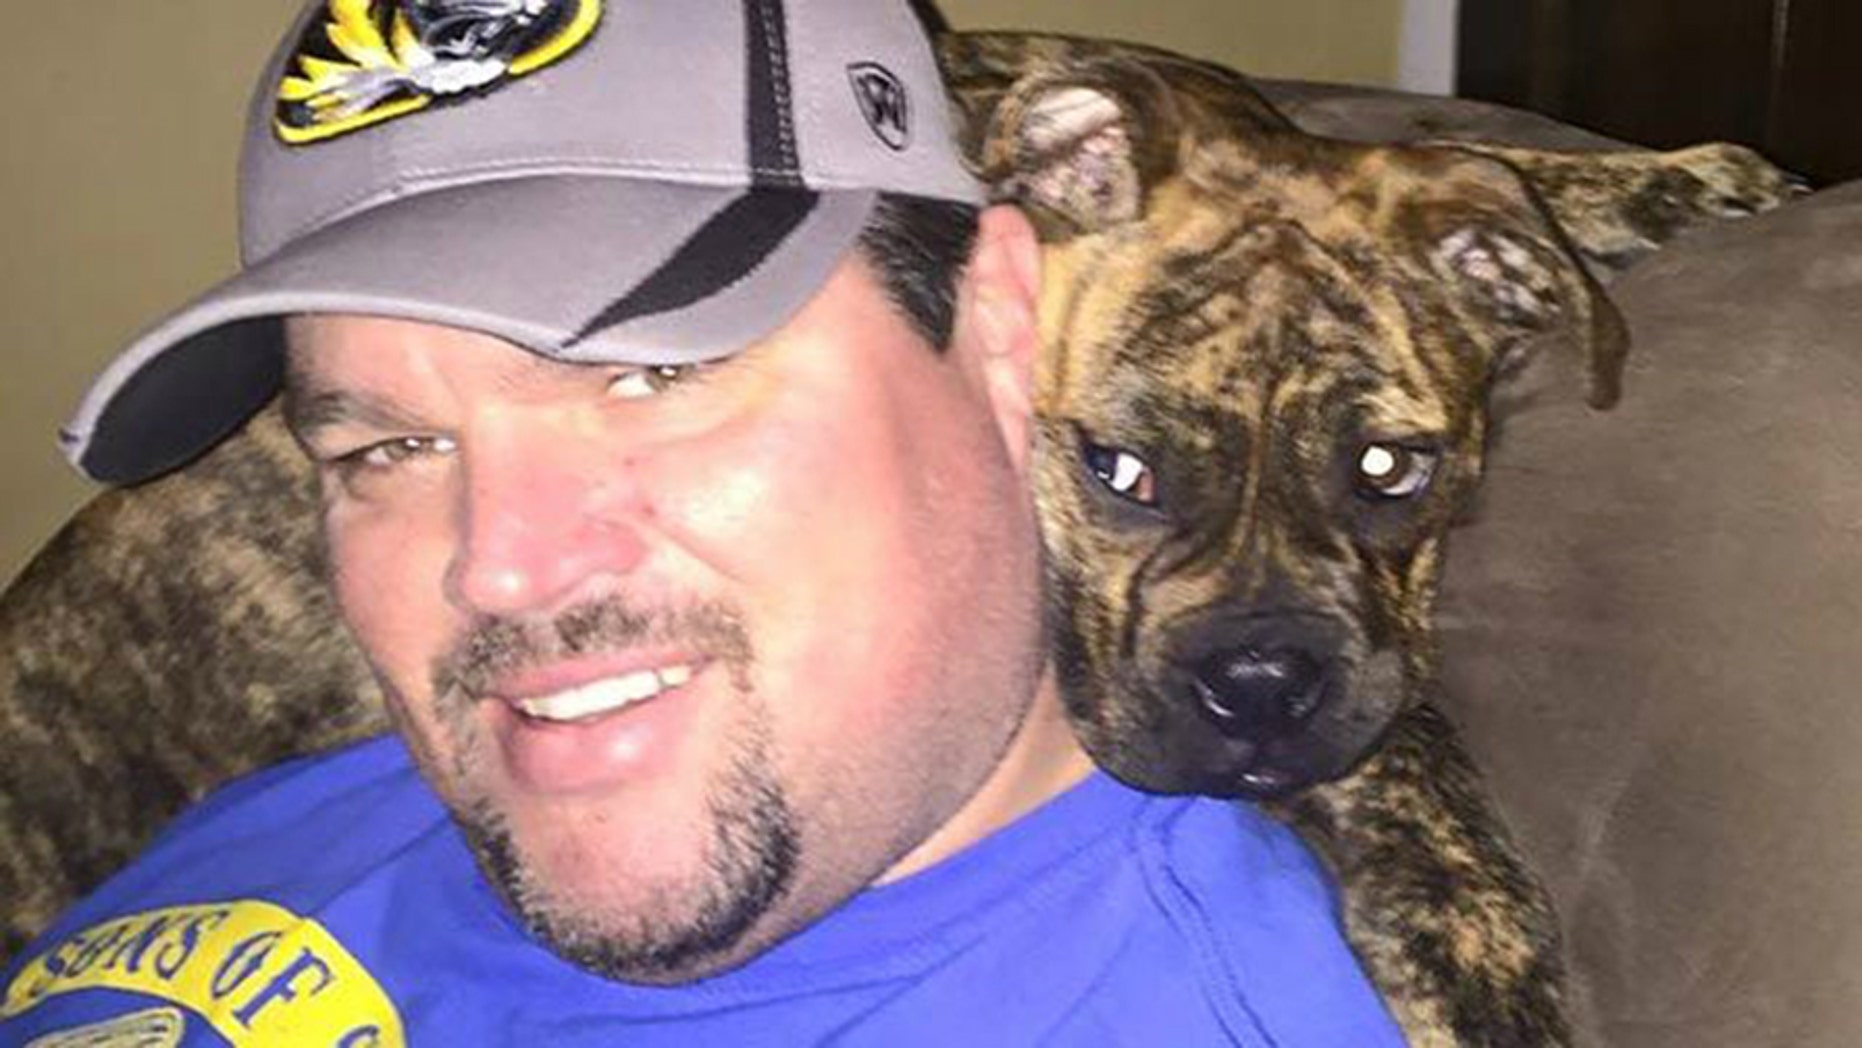 Police in Missouri said Sean Beary, 43, was fatally shot Wednesday at a sports bar after getting into an argument with someone over the size of a German Shepherd dog.